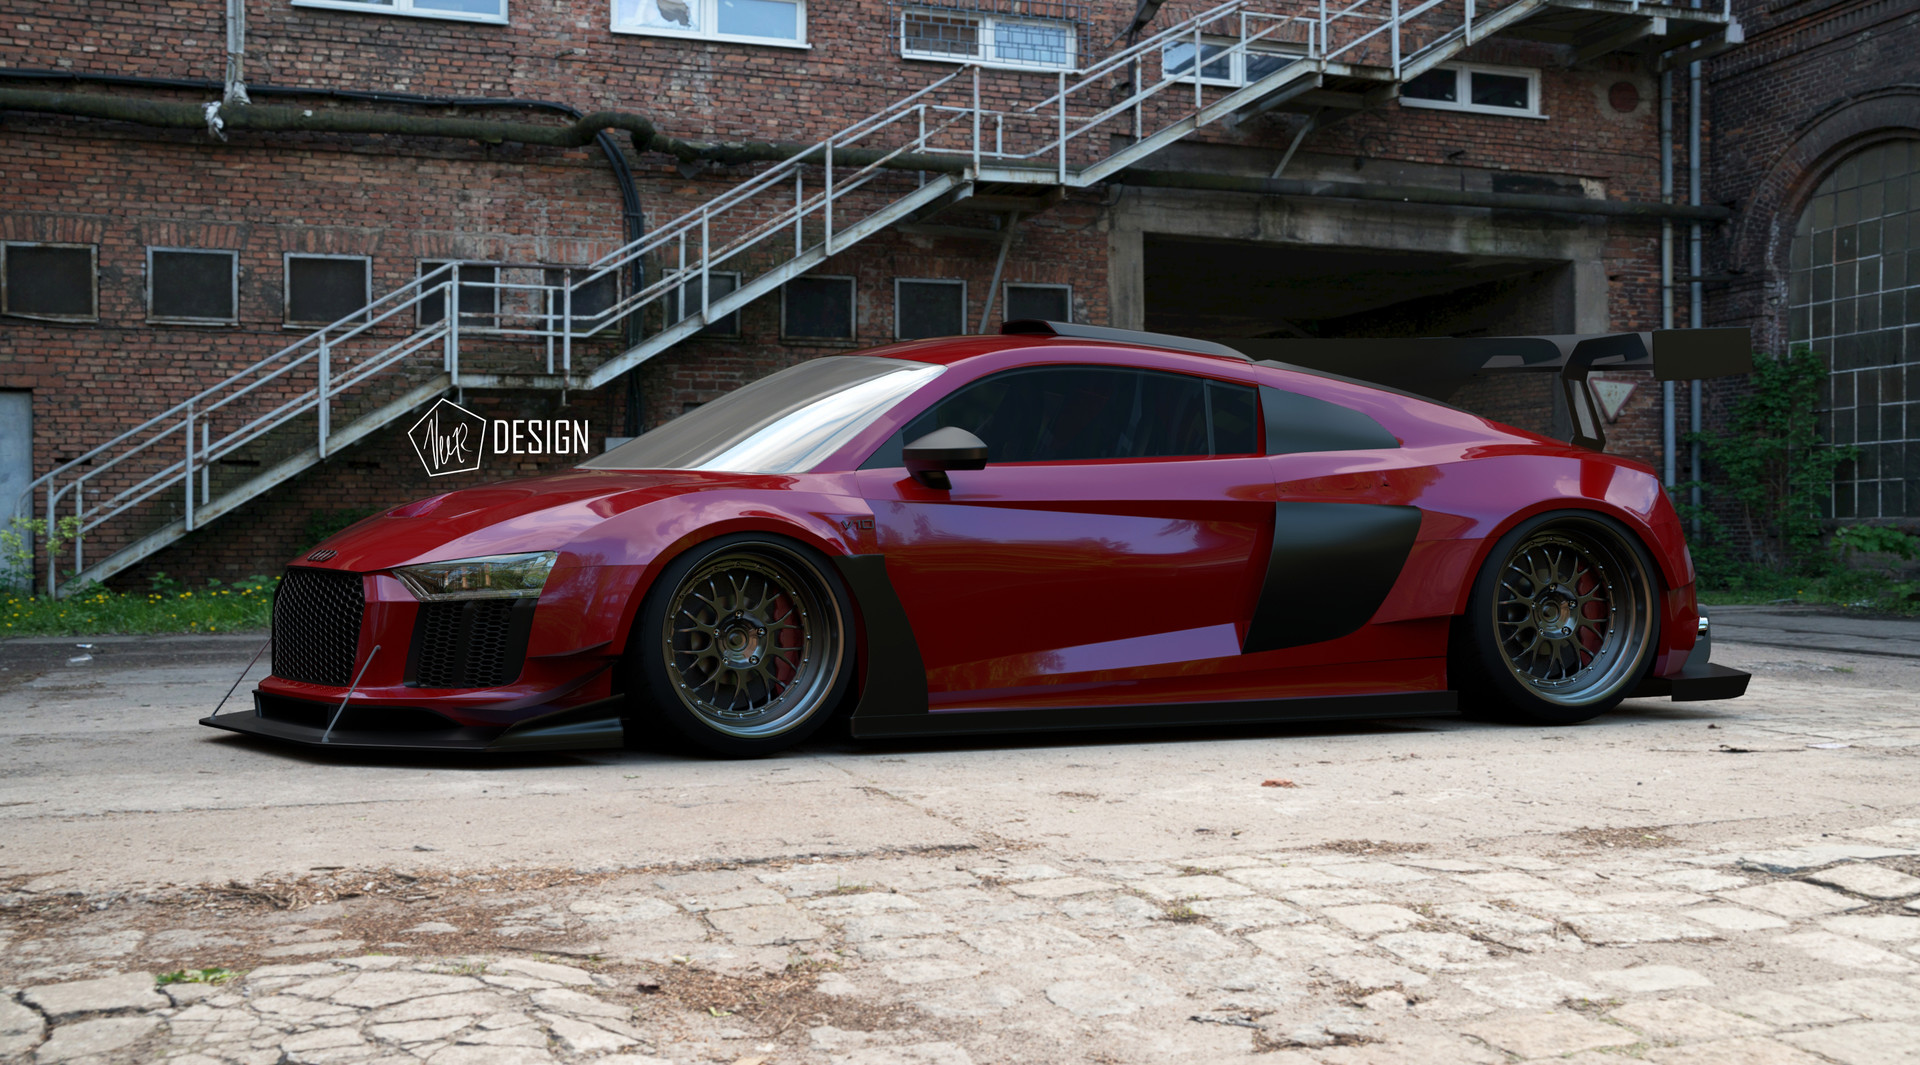 Veer design r8red